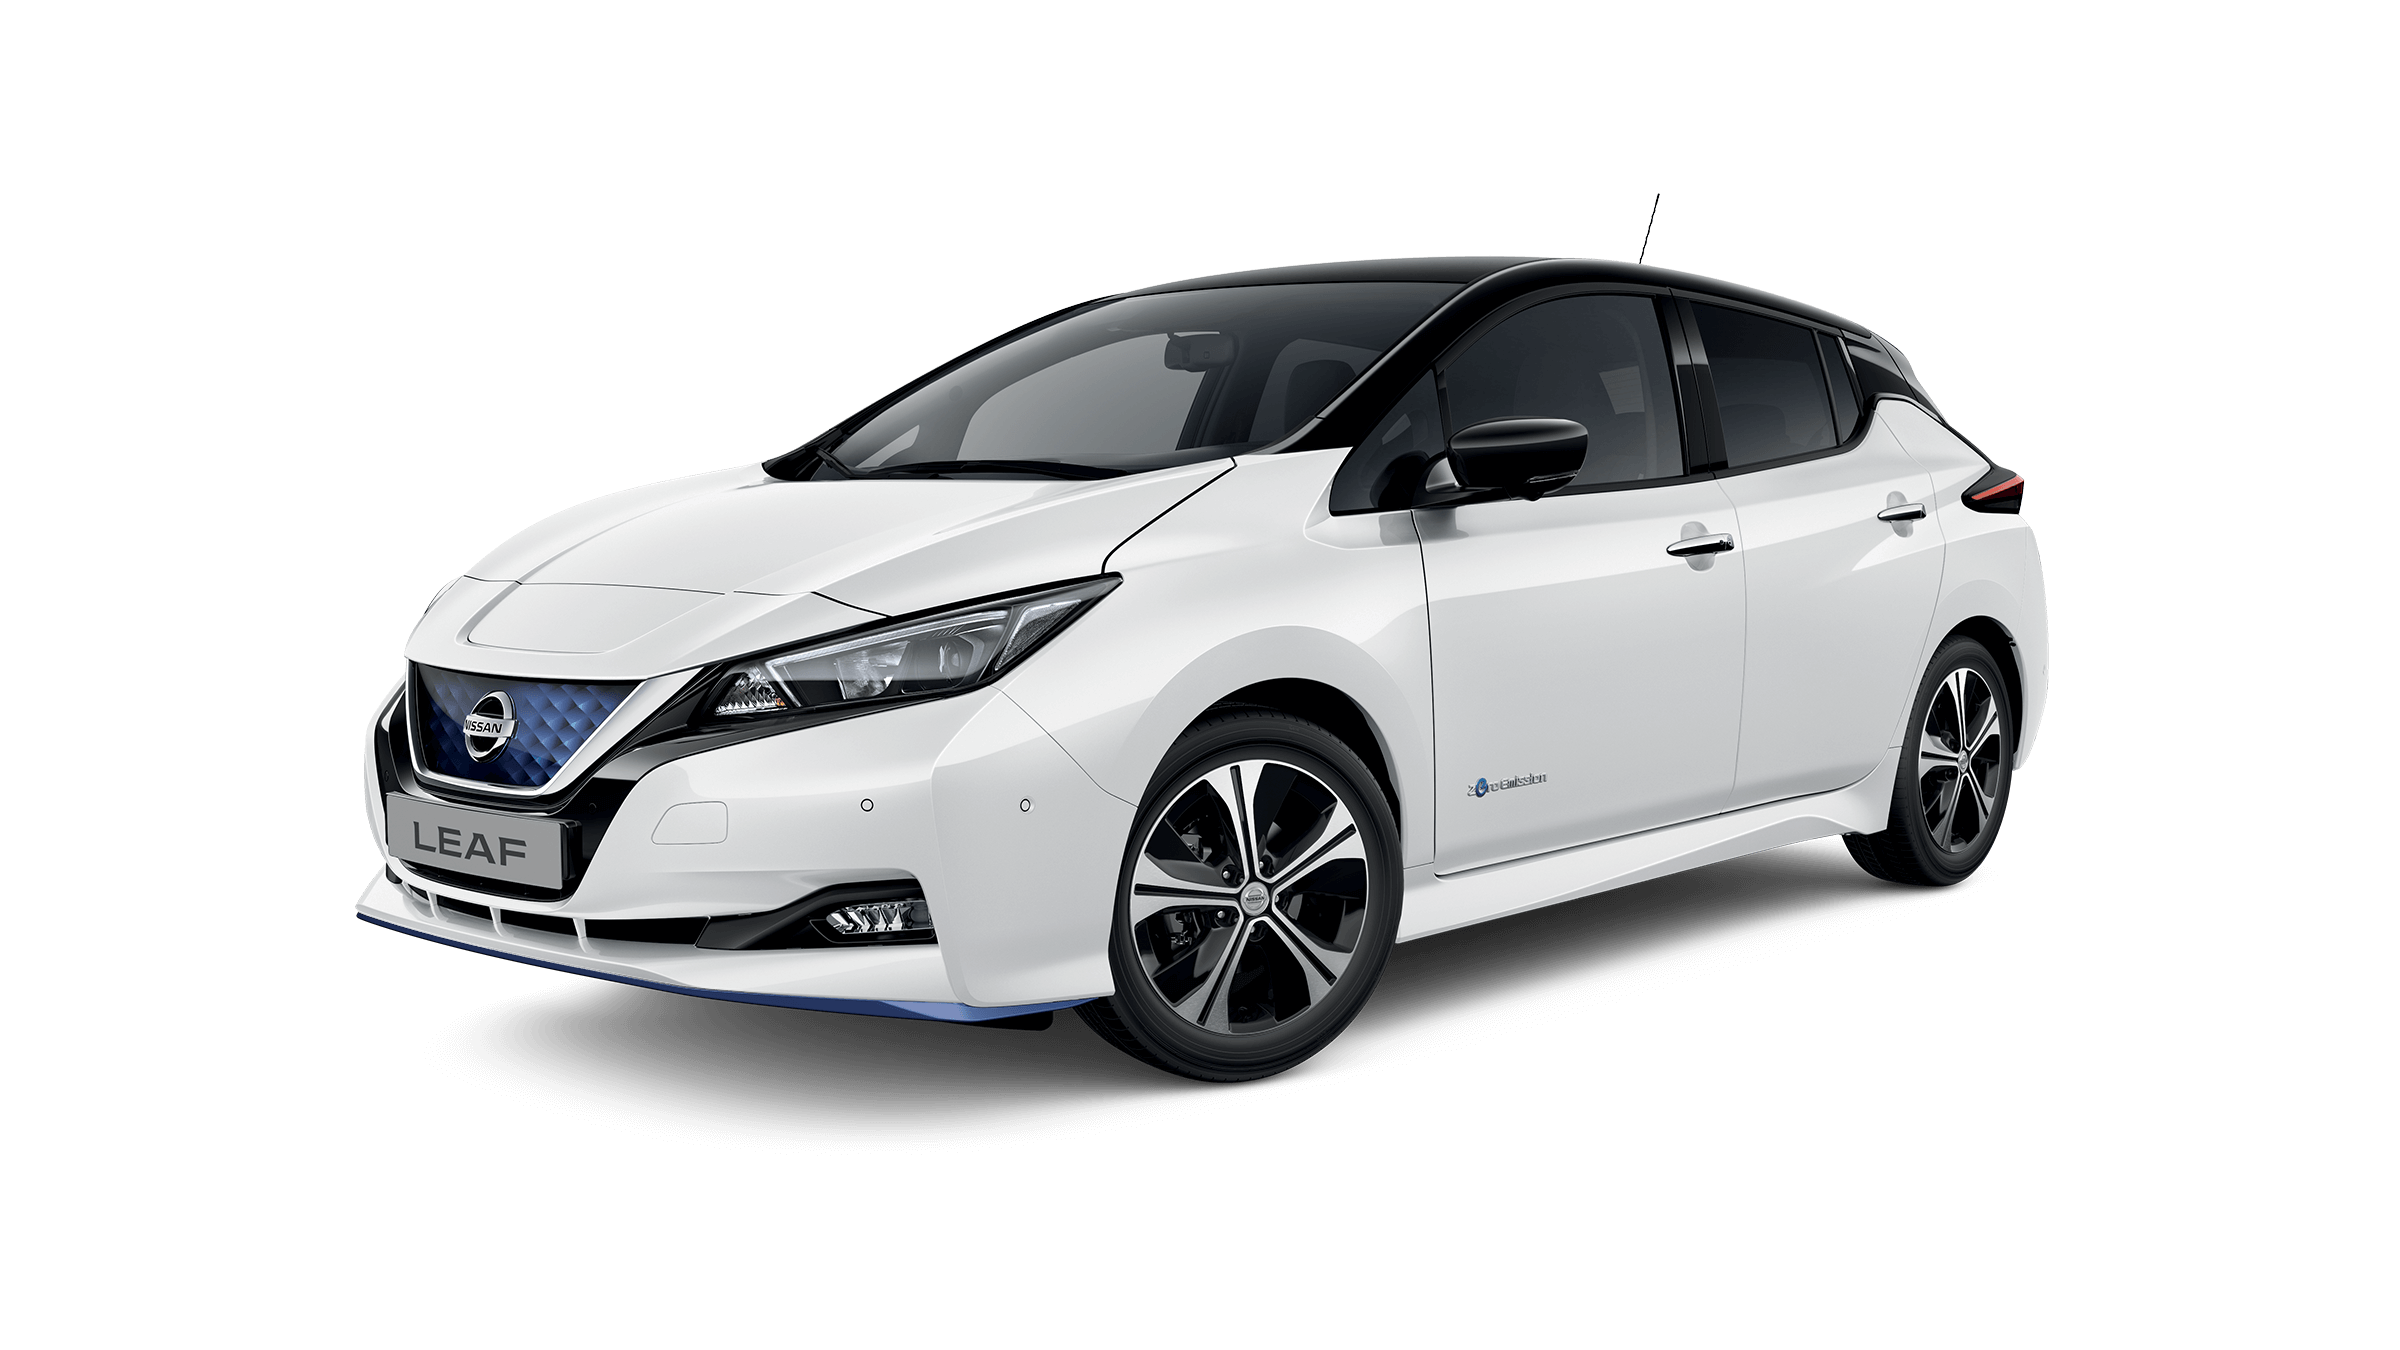 25 The Nissan Leaf 2019 60 Kwh New Model And Performance